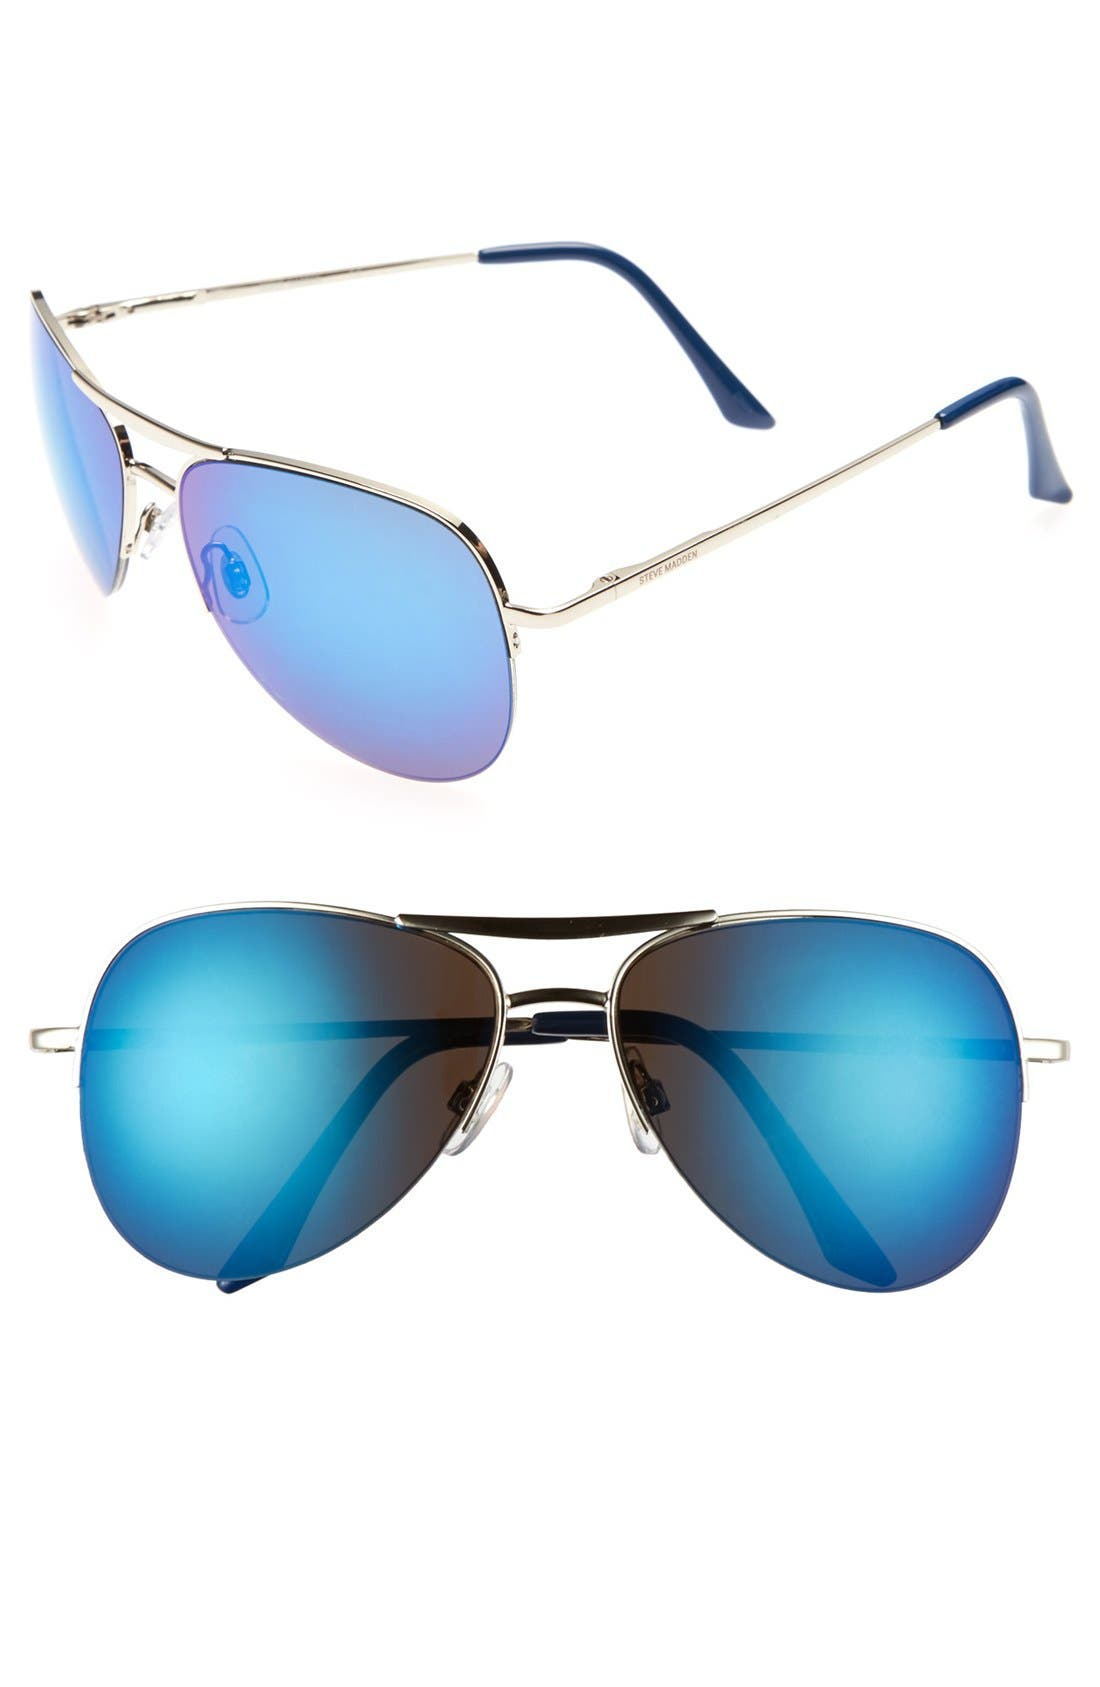 Main Image - Steve Madden 60mm Aviator Sunglasses